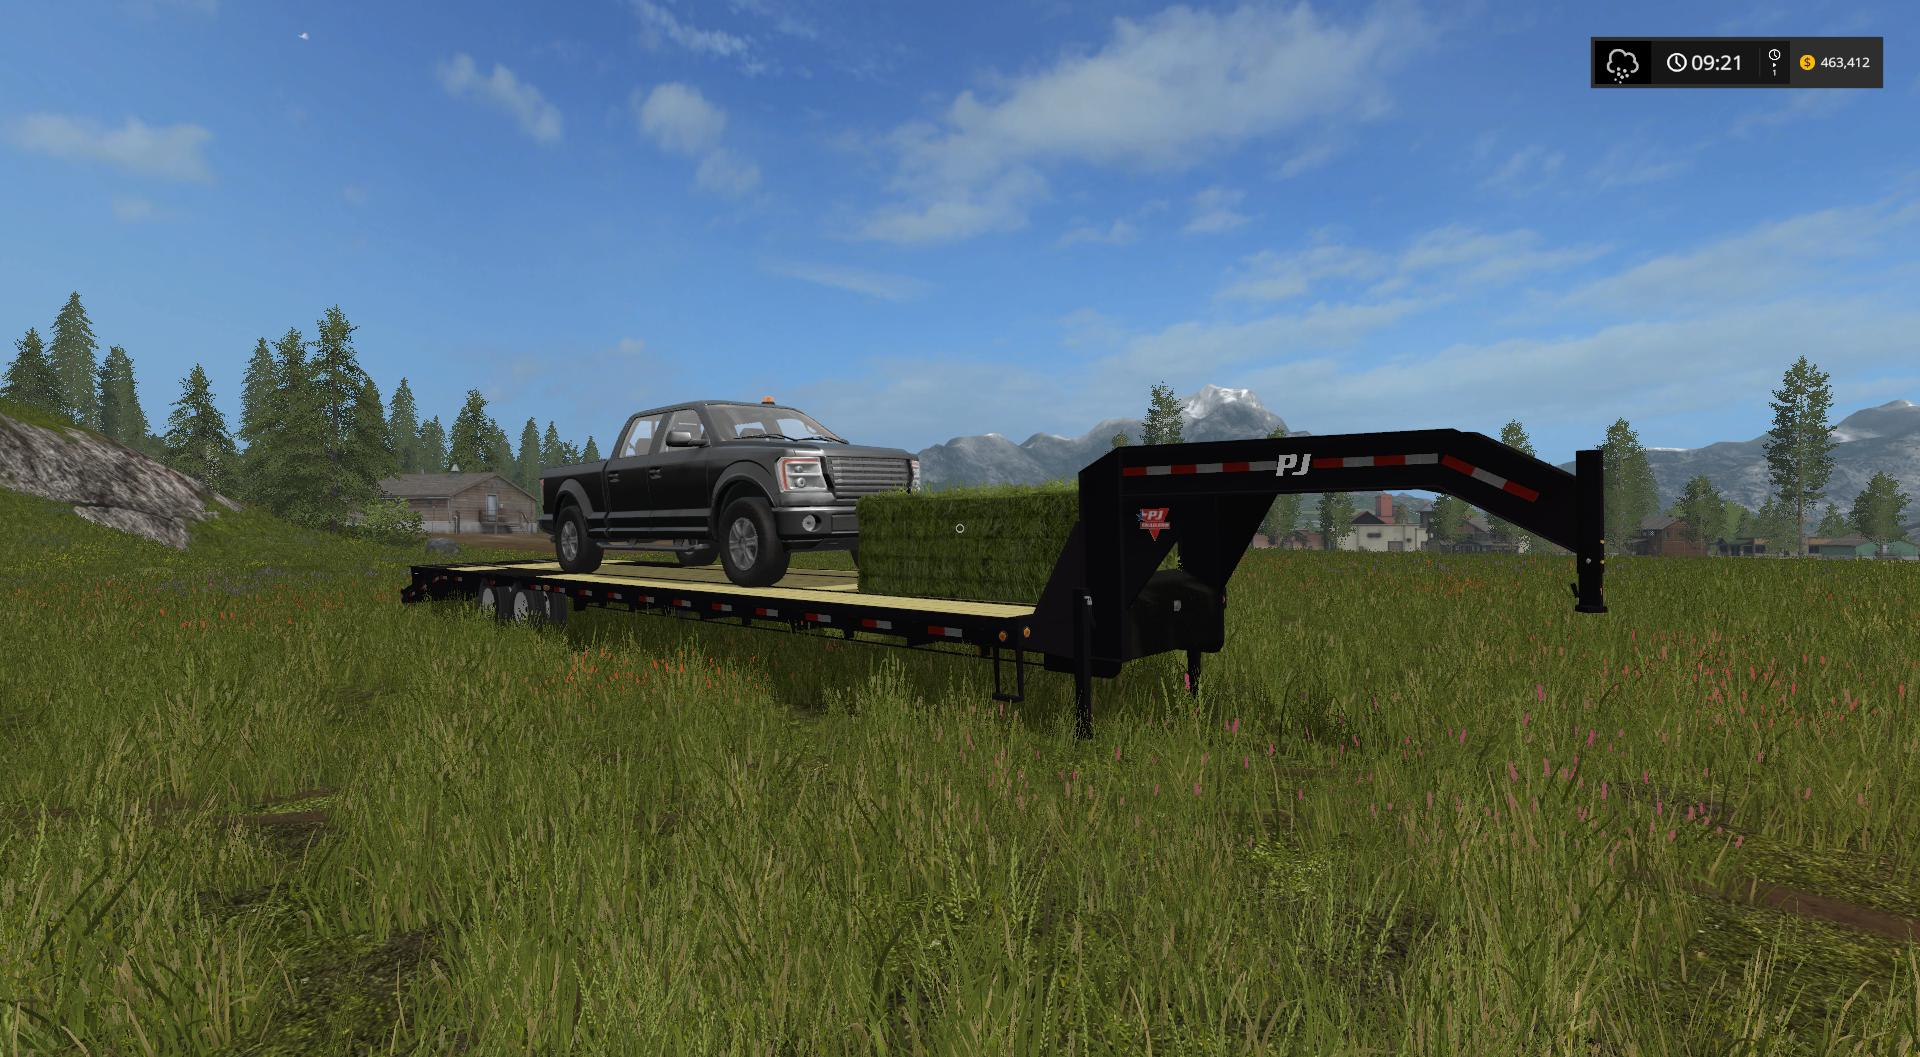 Fs17 Load Trail as well Index as well Watch furthermore Pictures Of Big Trucks For Kids furthermore Produits gal seriem3. on dump truck trailers